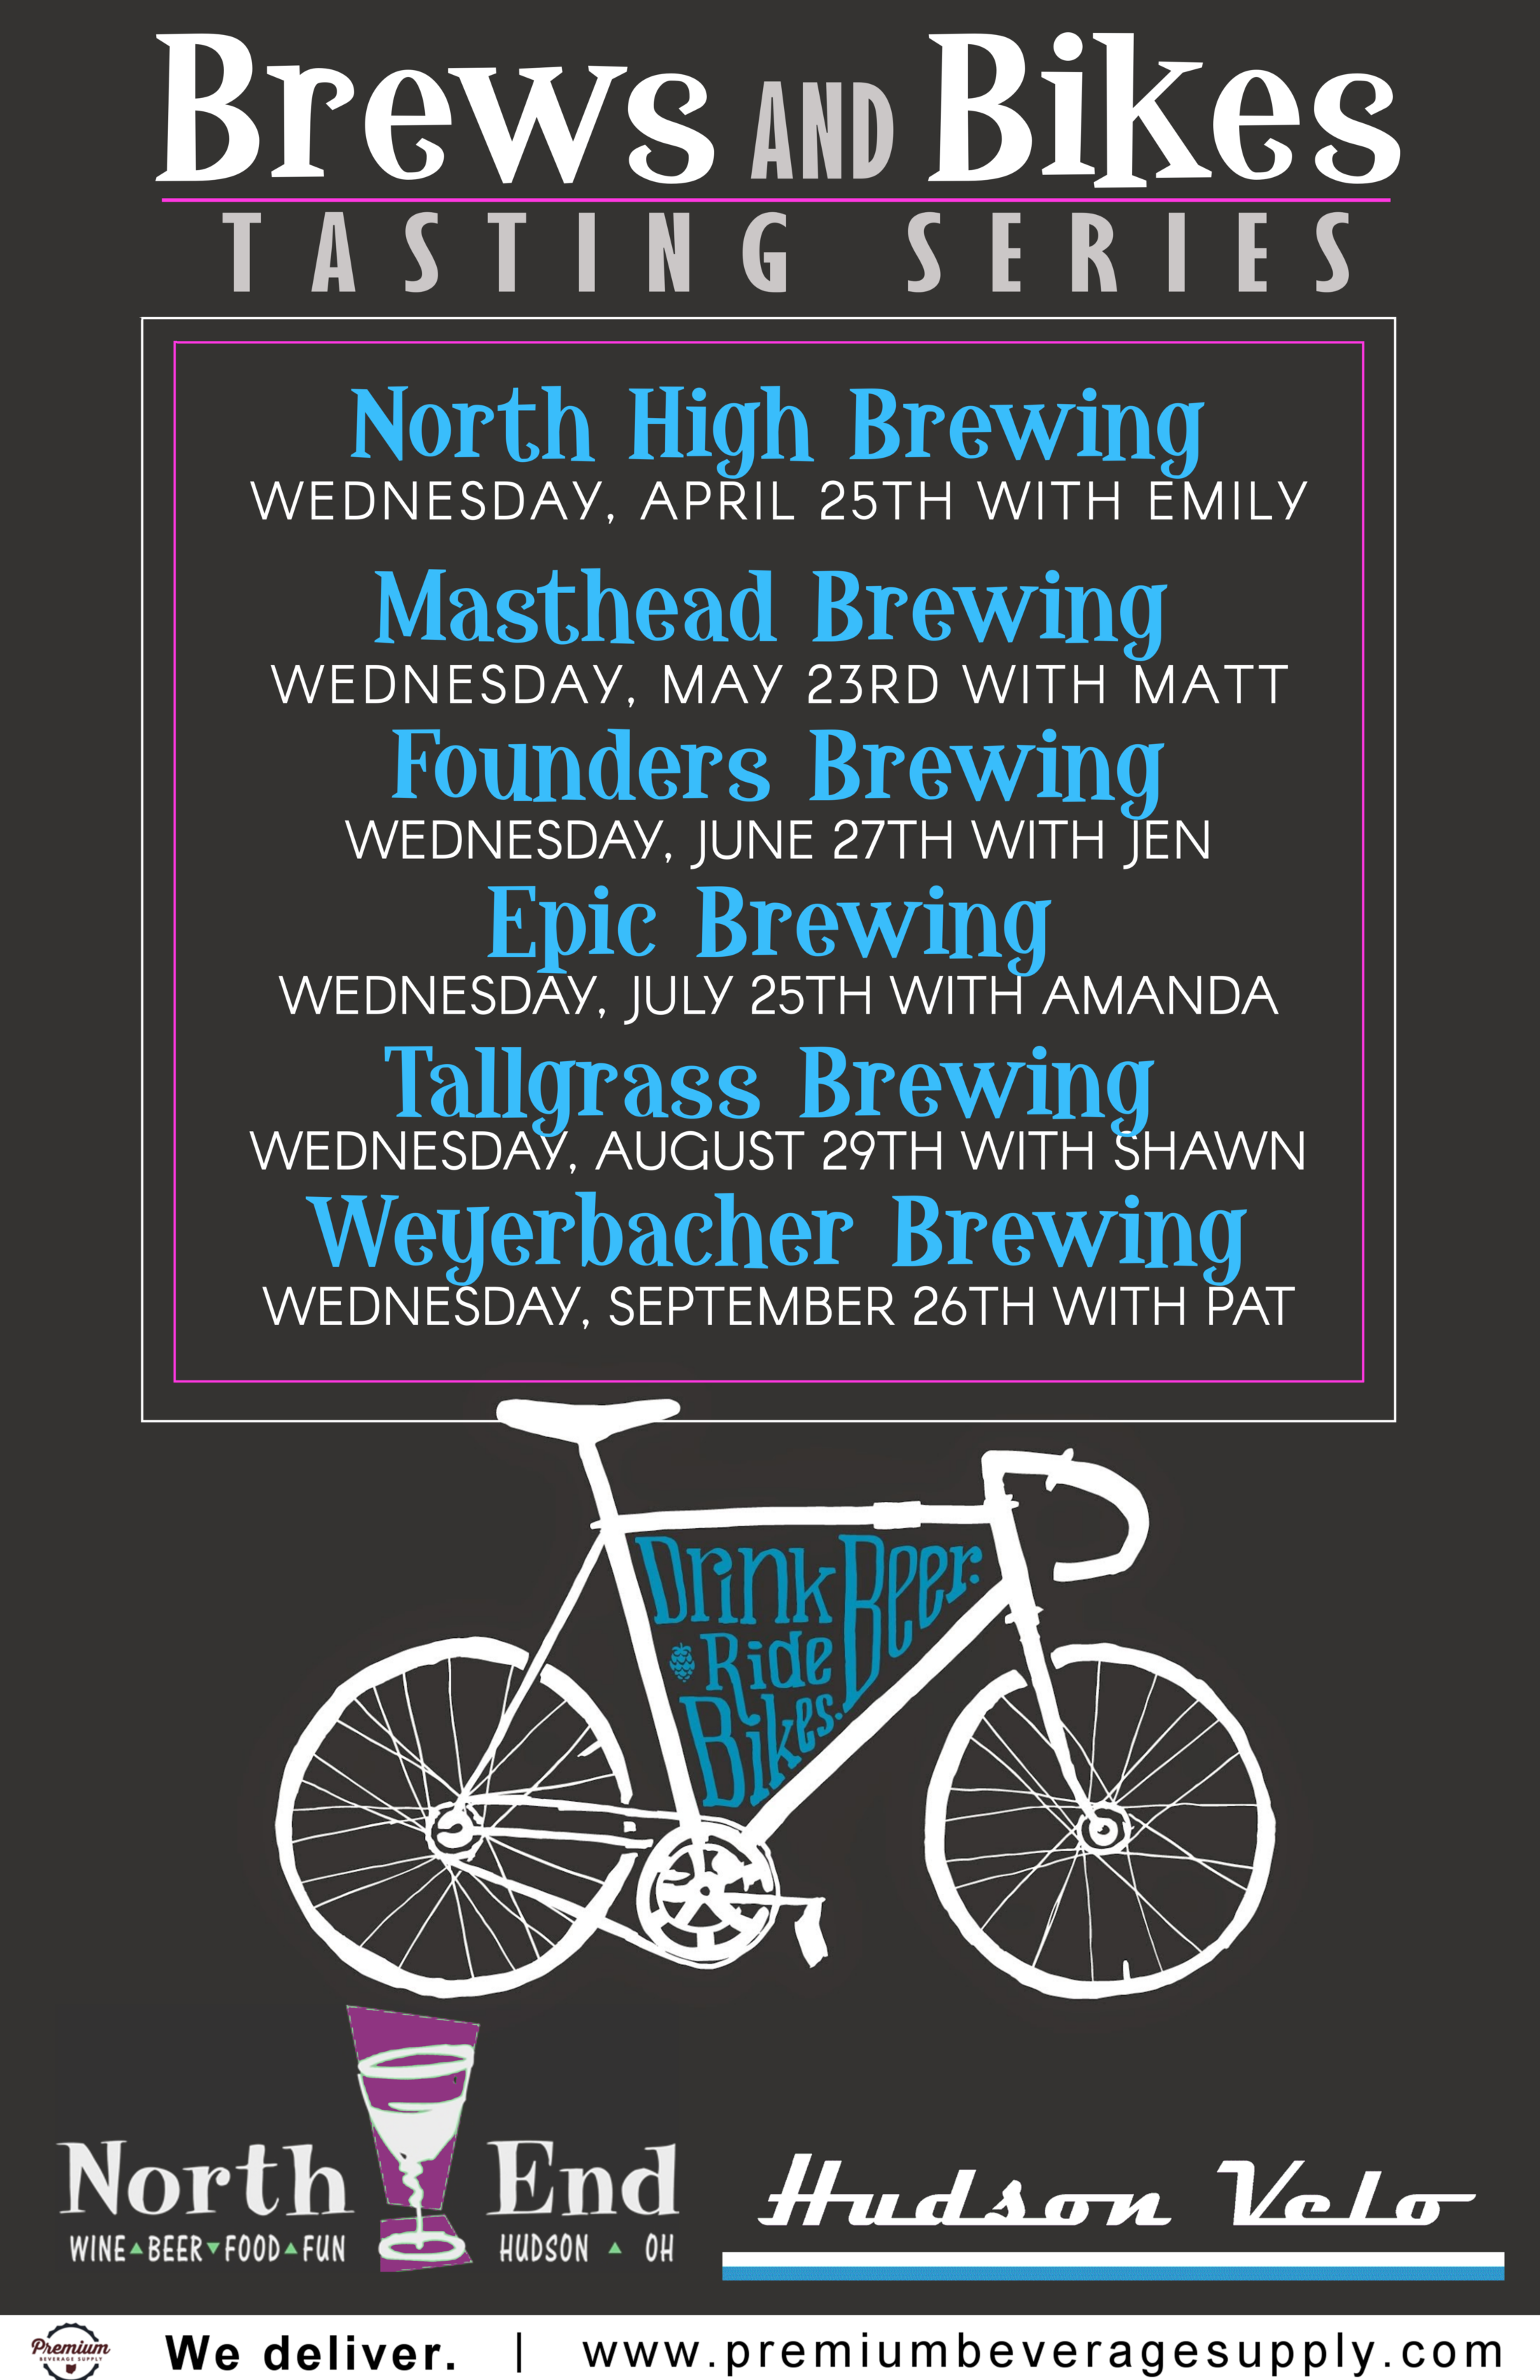 Brews and Bikes Tasting Series